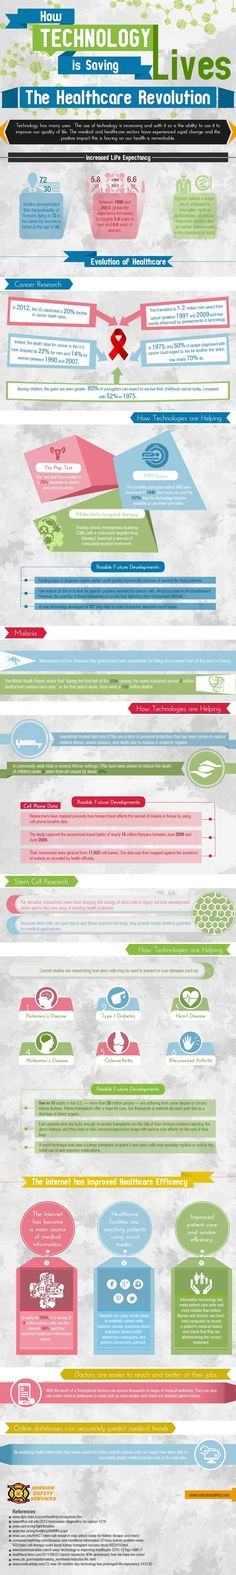 Infographic: How Healthcare Technology is Saving Lives